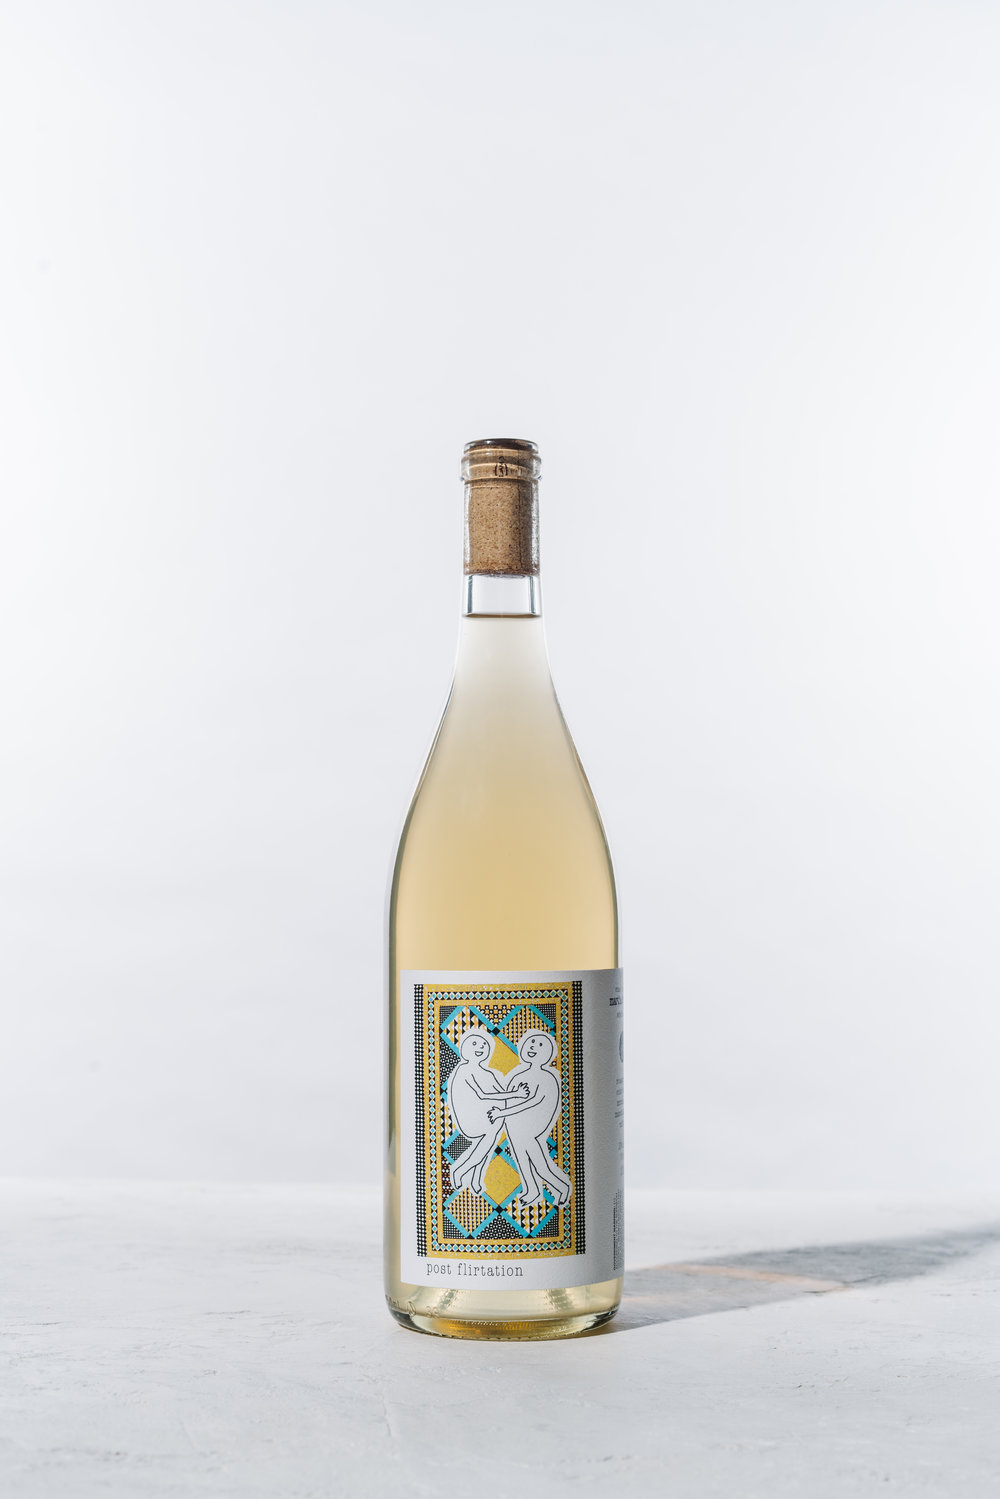 2018 Post Flirtation White Blend | $26